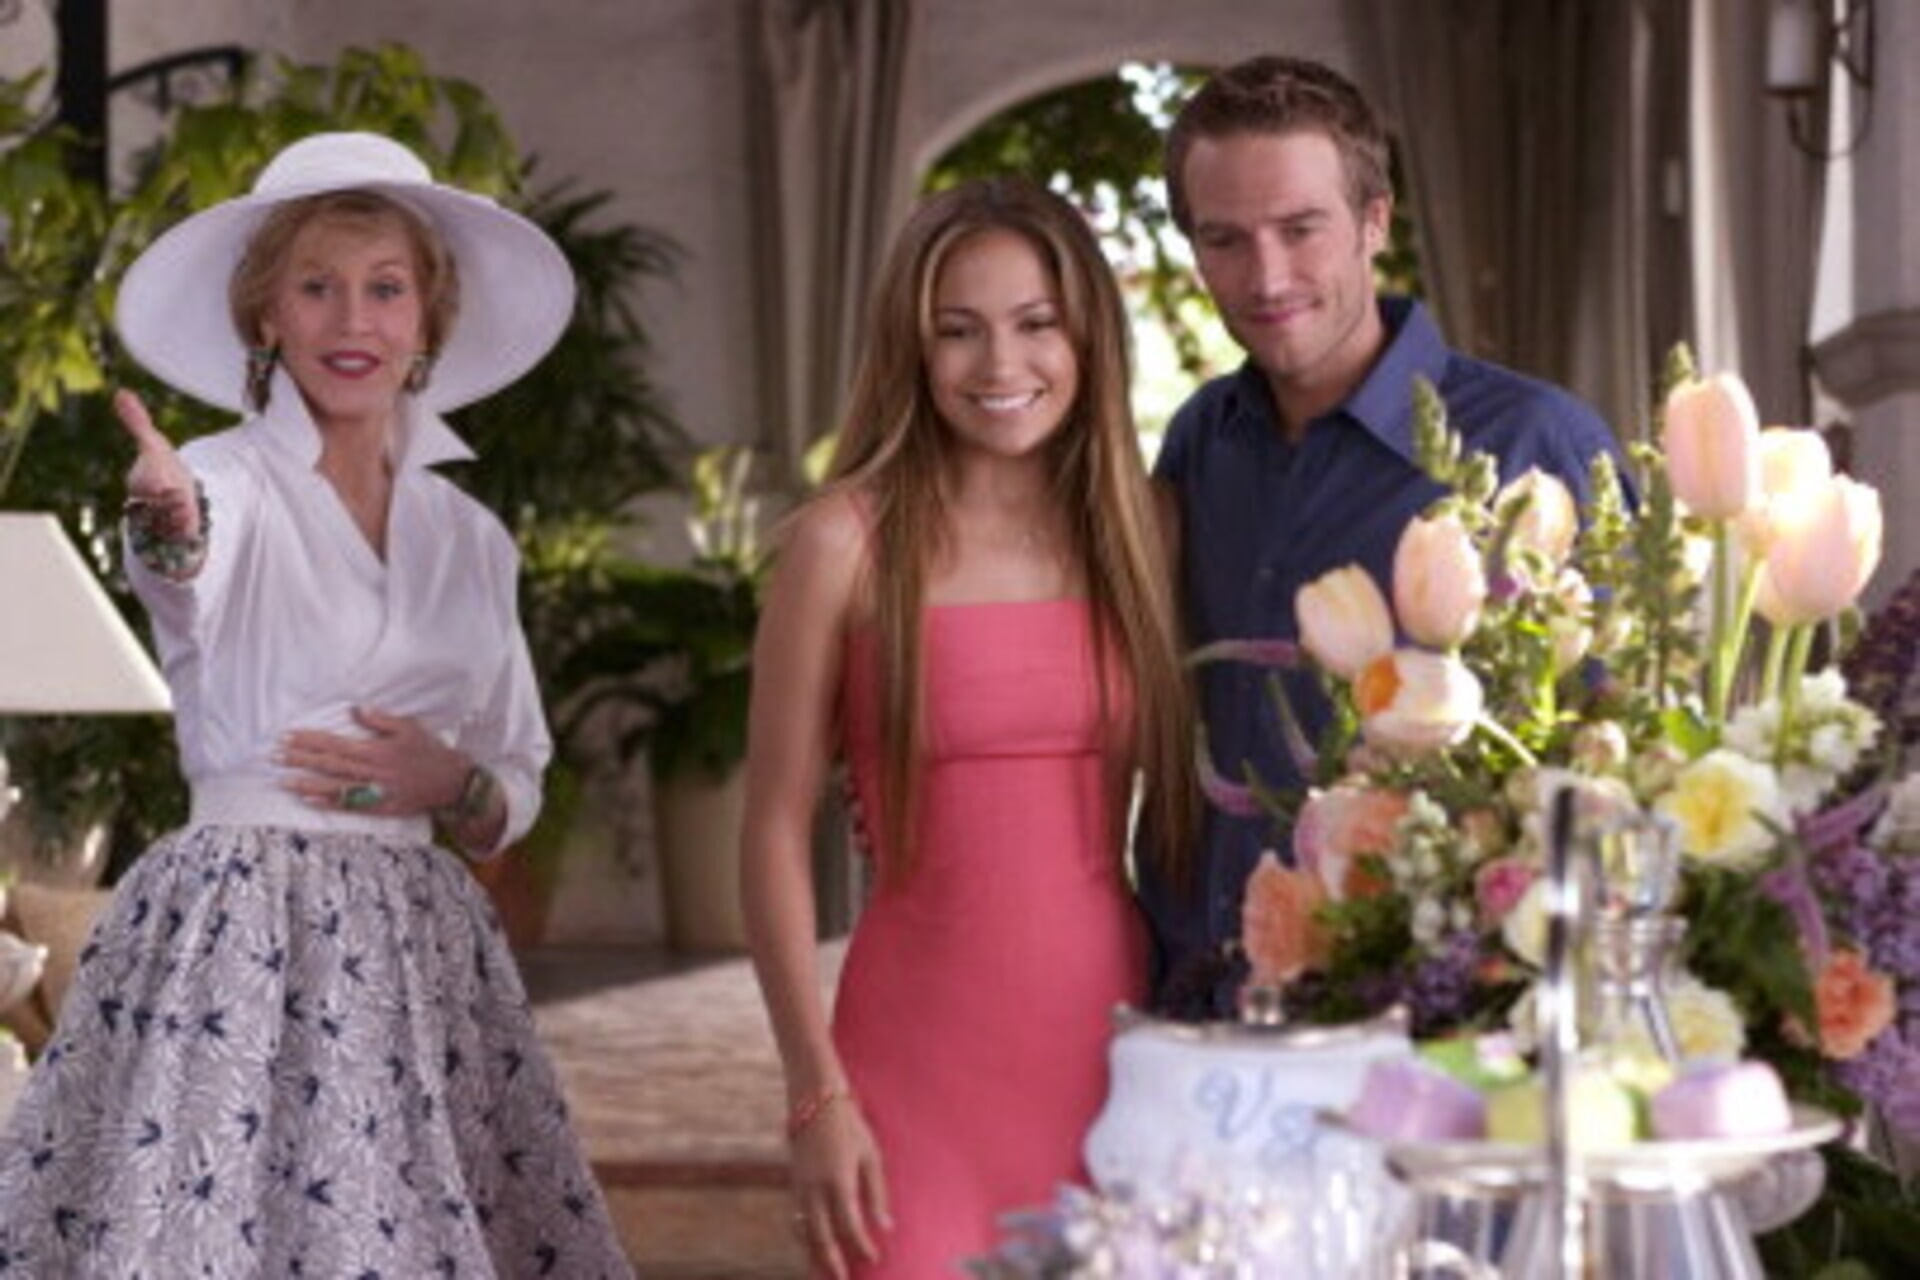 Monster-in-law - Image 19